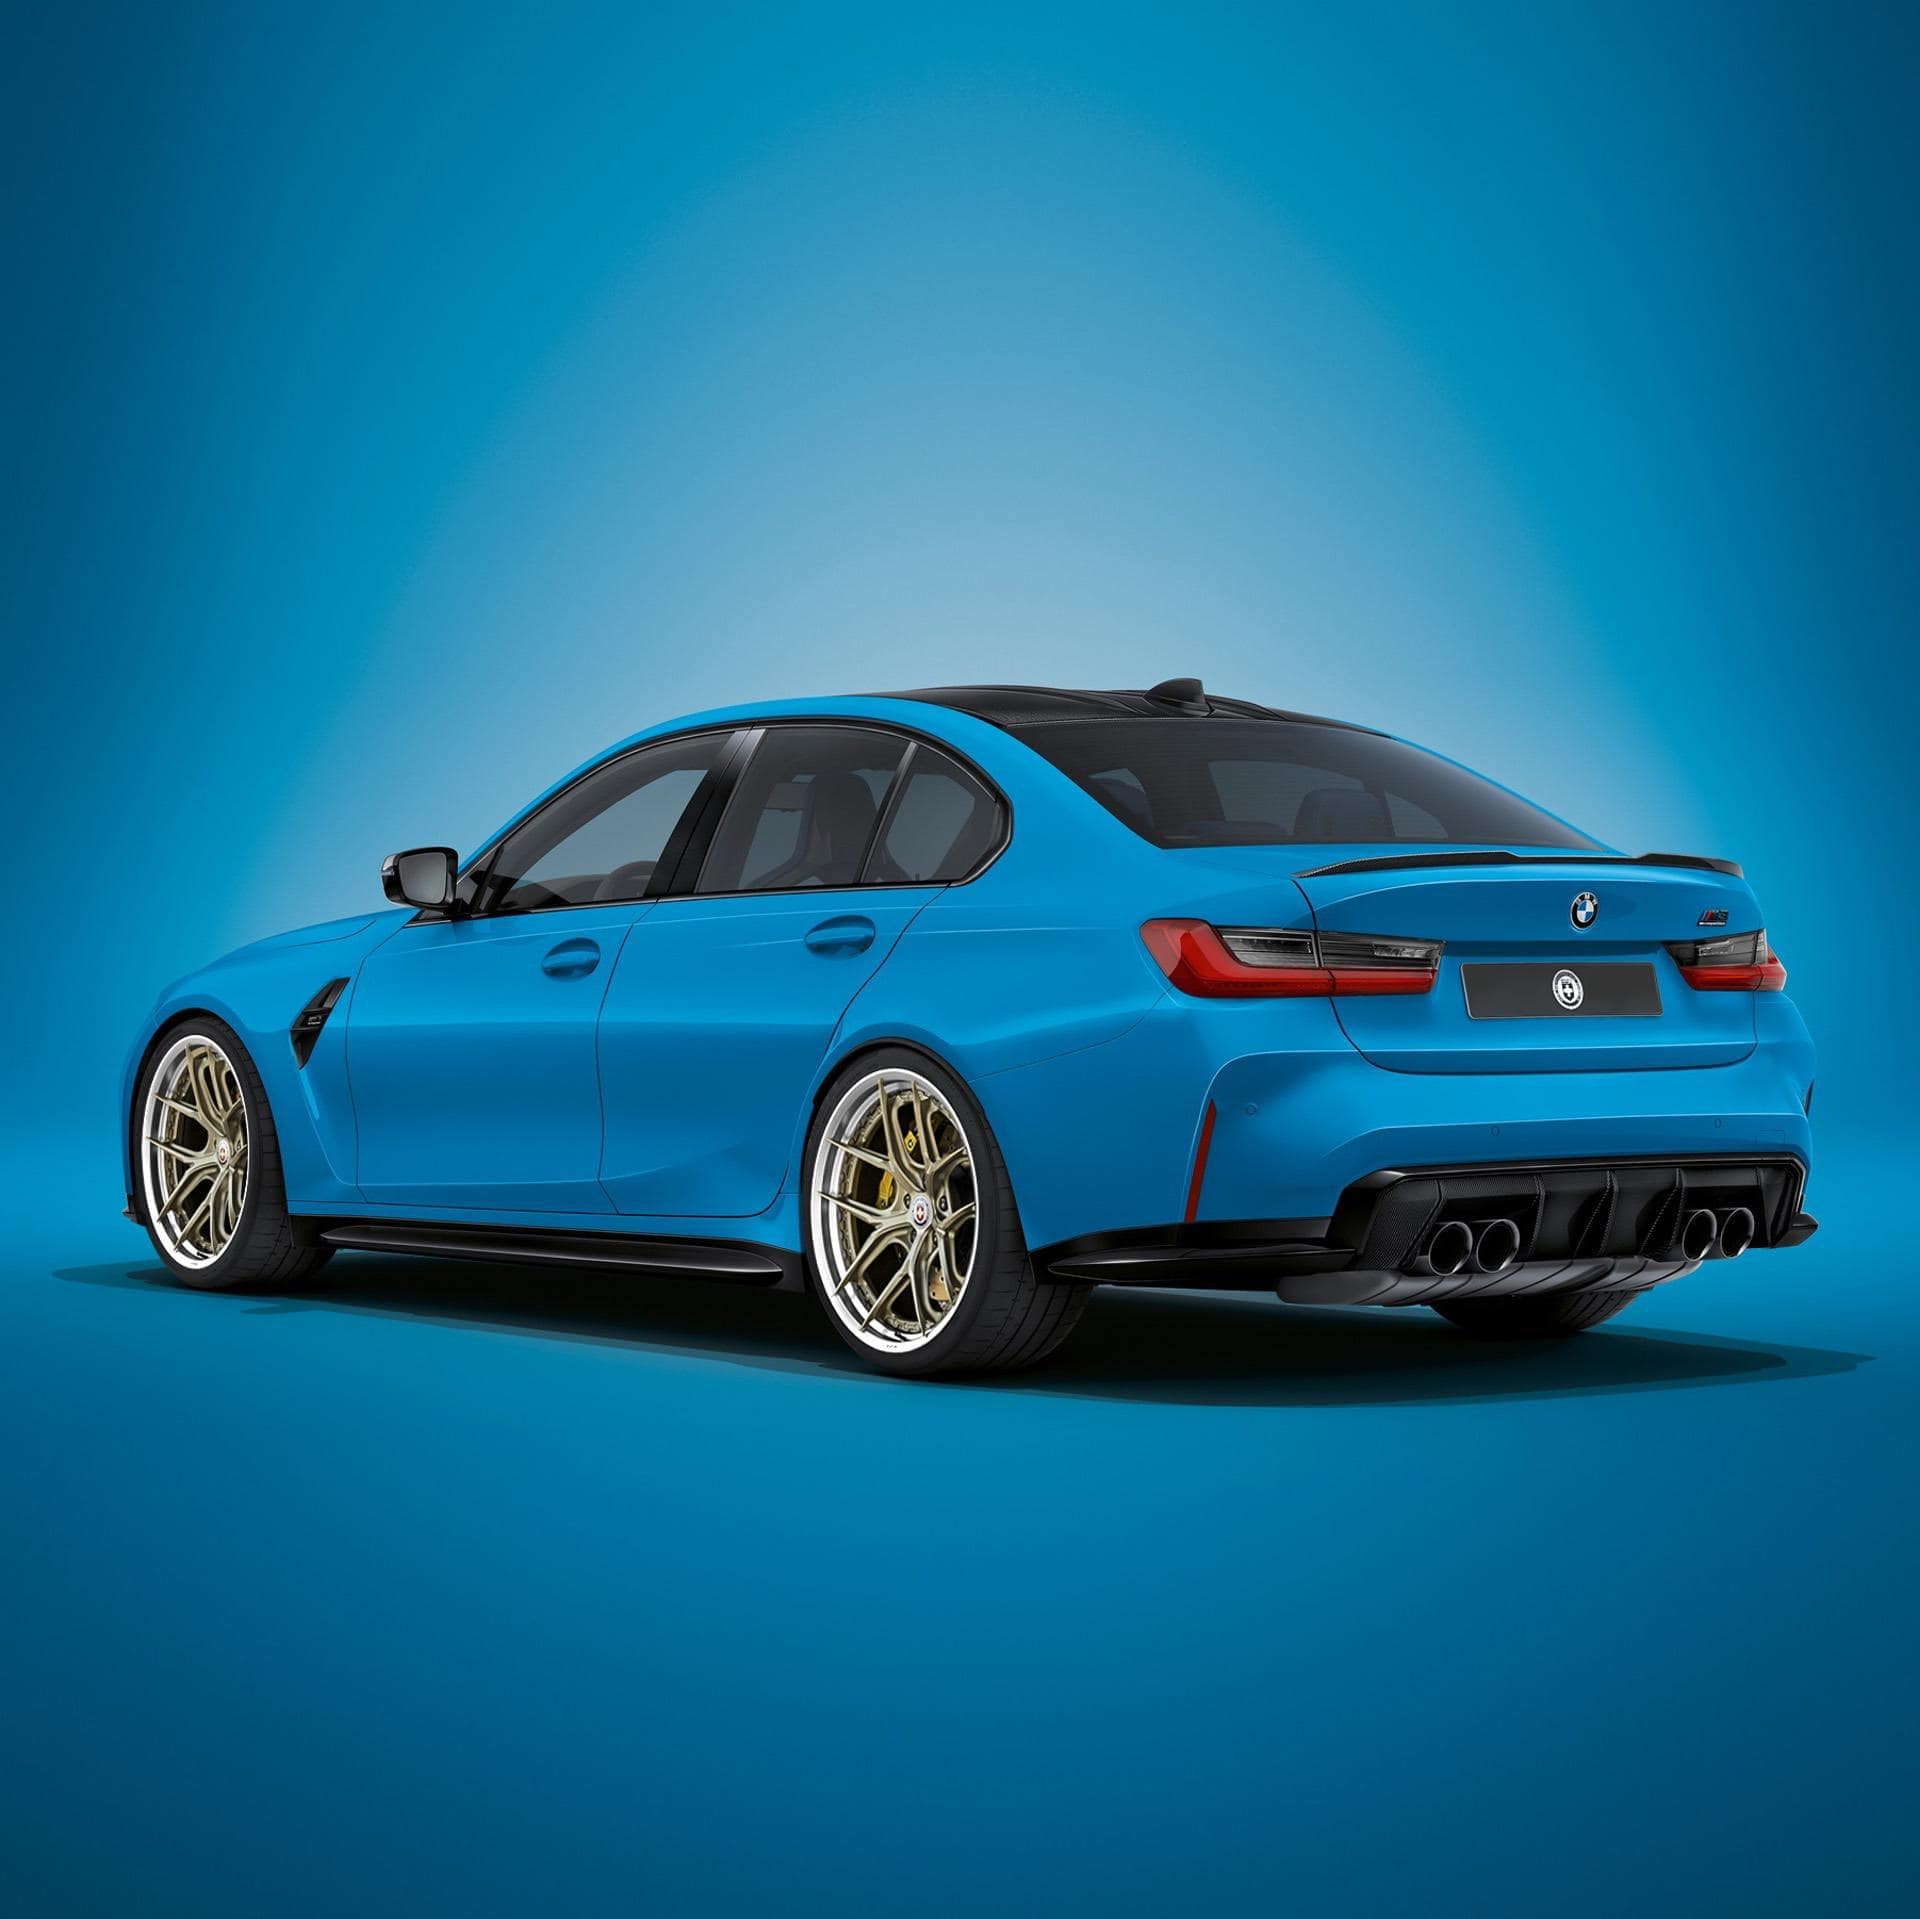 New BMW M3 and M4 rendered with aftermarket wheels from HRE